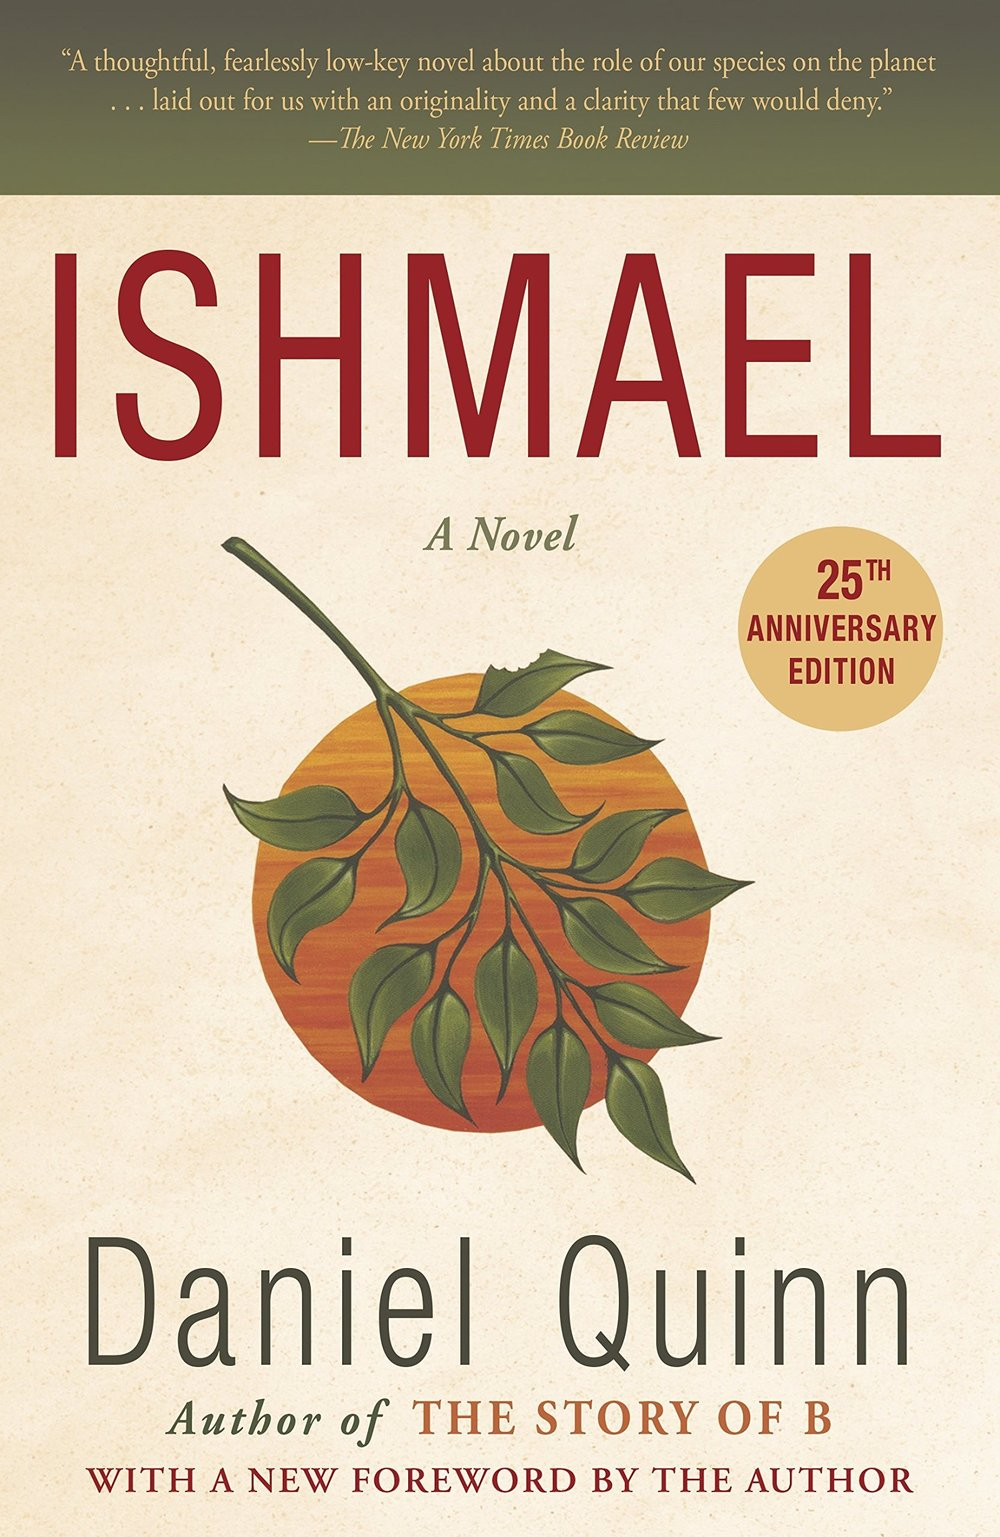 Ishmael   In  Ishmael , which received the Turner Tomorrow Fellowship for the best work of fiction offering positive solutions to global problems, Daniel Quinn parses humanity's origins and its relationship with nature, in search of an answer to this challenging question: How can we save the world from ourselves?